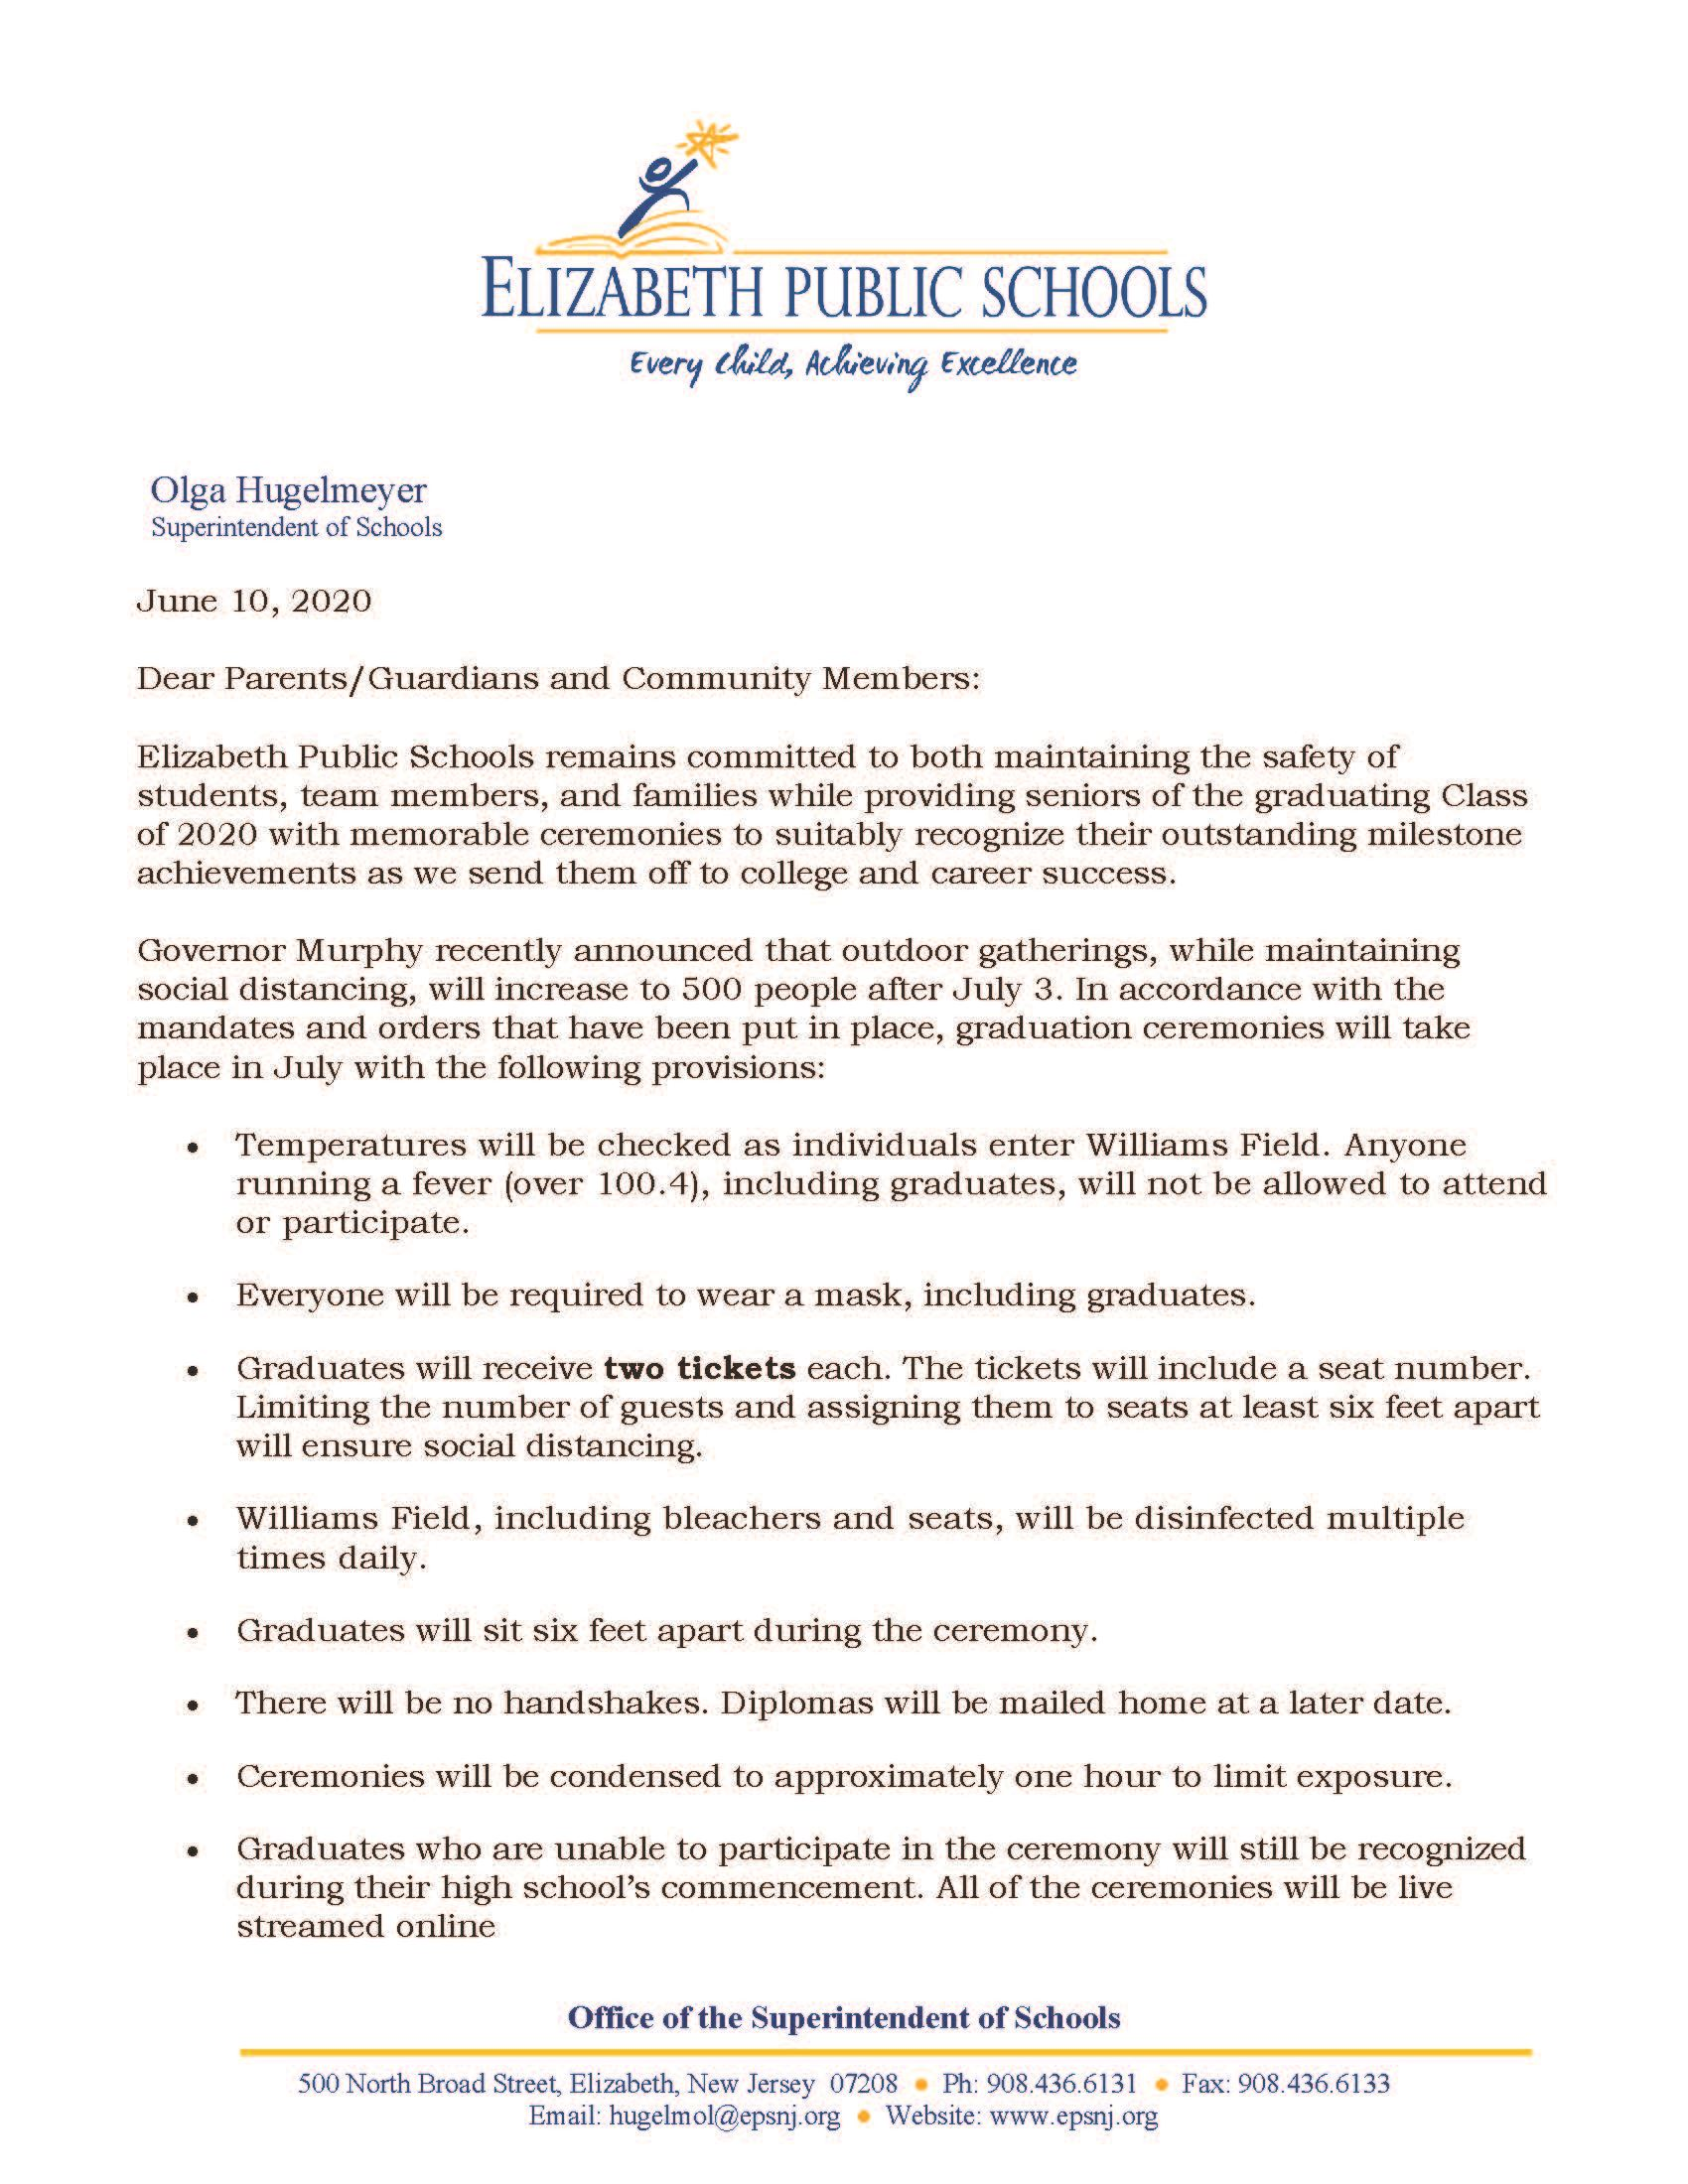 Letter to Community- Coronavirus Update- High School Graduation Ceremonies- 6-10-20